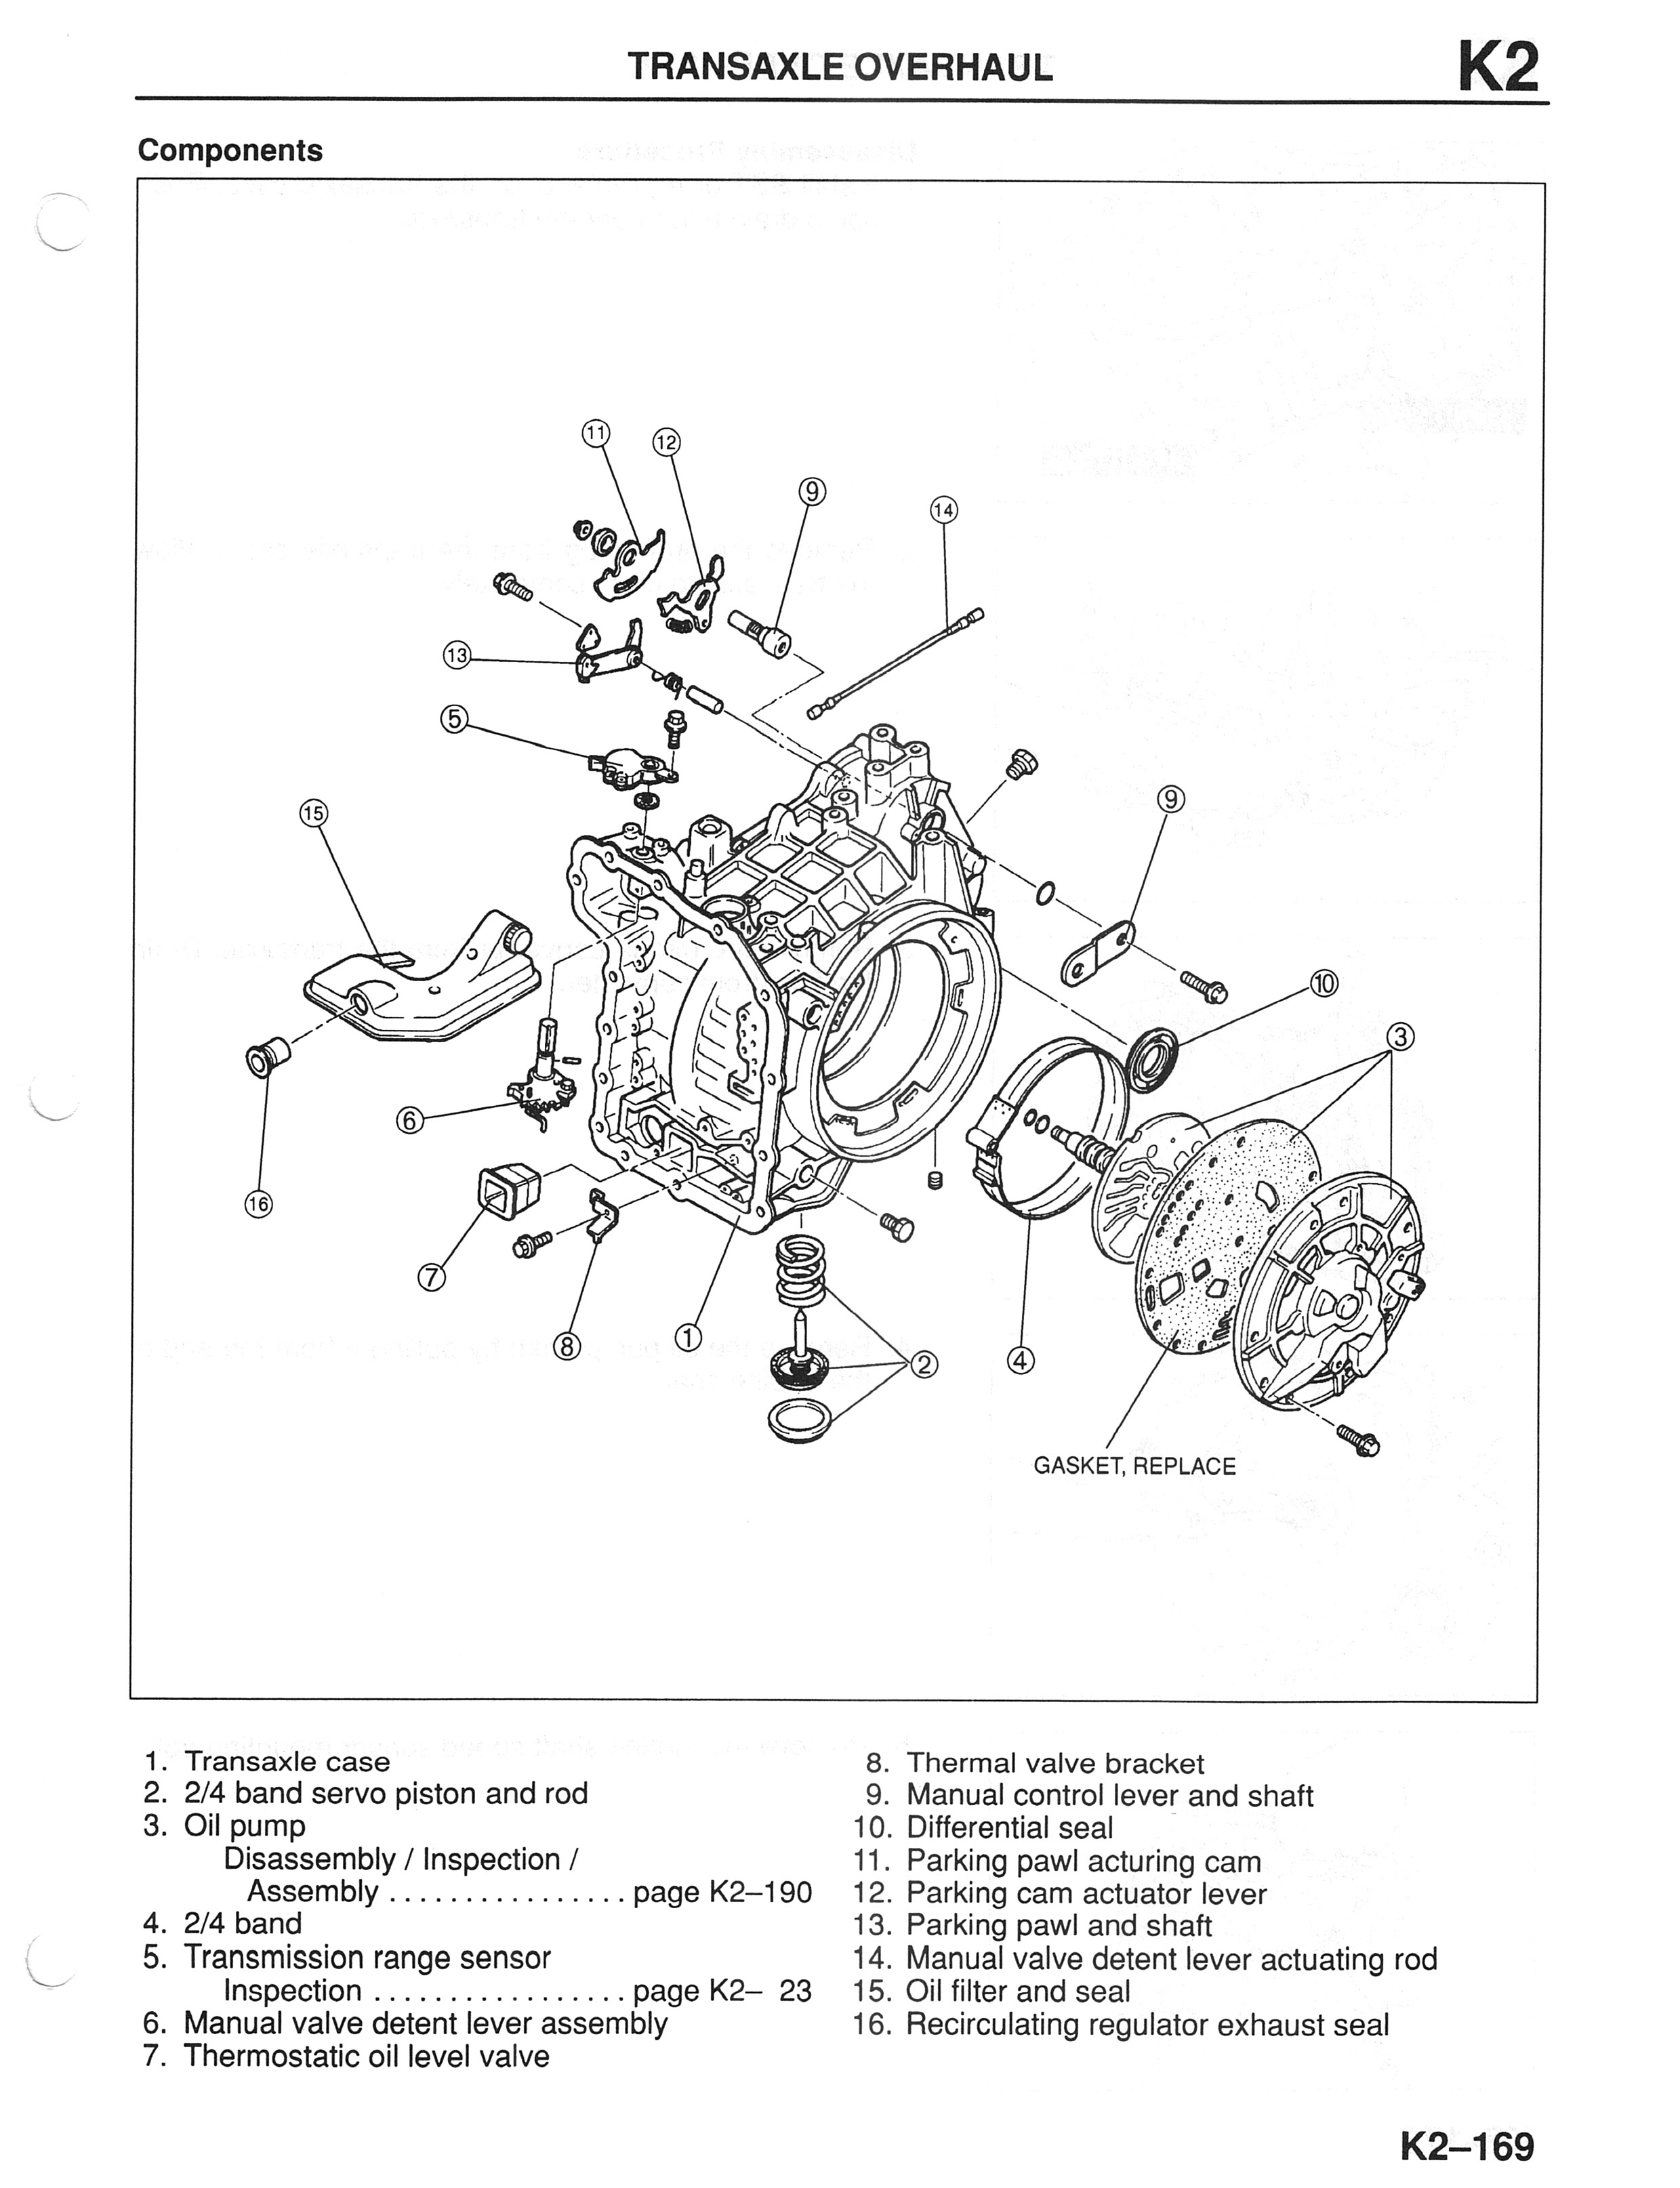 diagram of 2002 mazda 626 engine transmission fluid